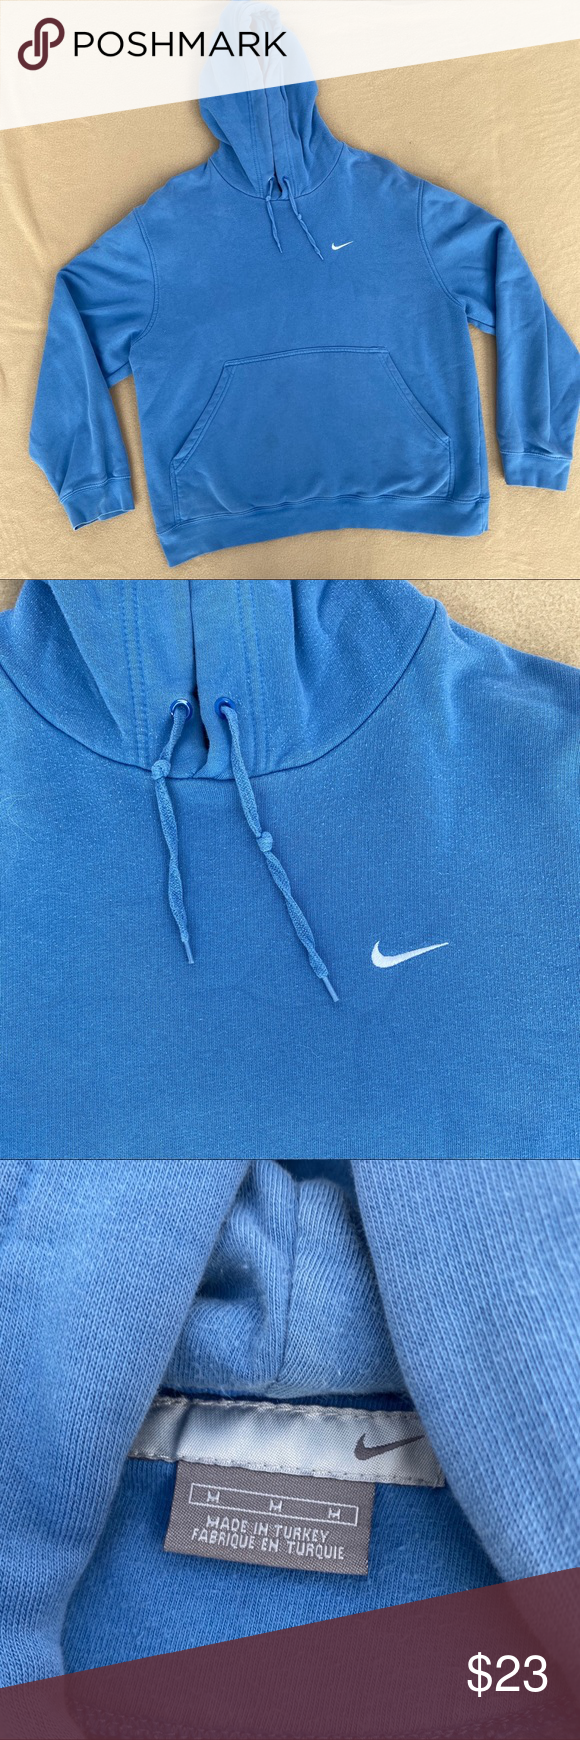 Baby Blue Nike Hoodie Perfect Staple Piece Love The Color And In Great Condition Men S Large Nike Hoodie Nike Hoodie Blue Nike Long Sleeve Tshirt Men [ 1740 x 580 Pixel ]